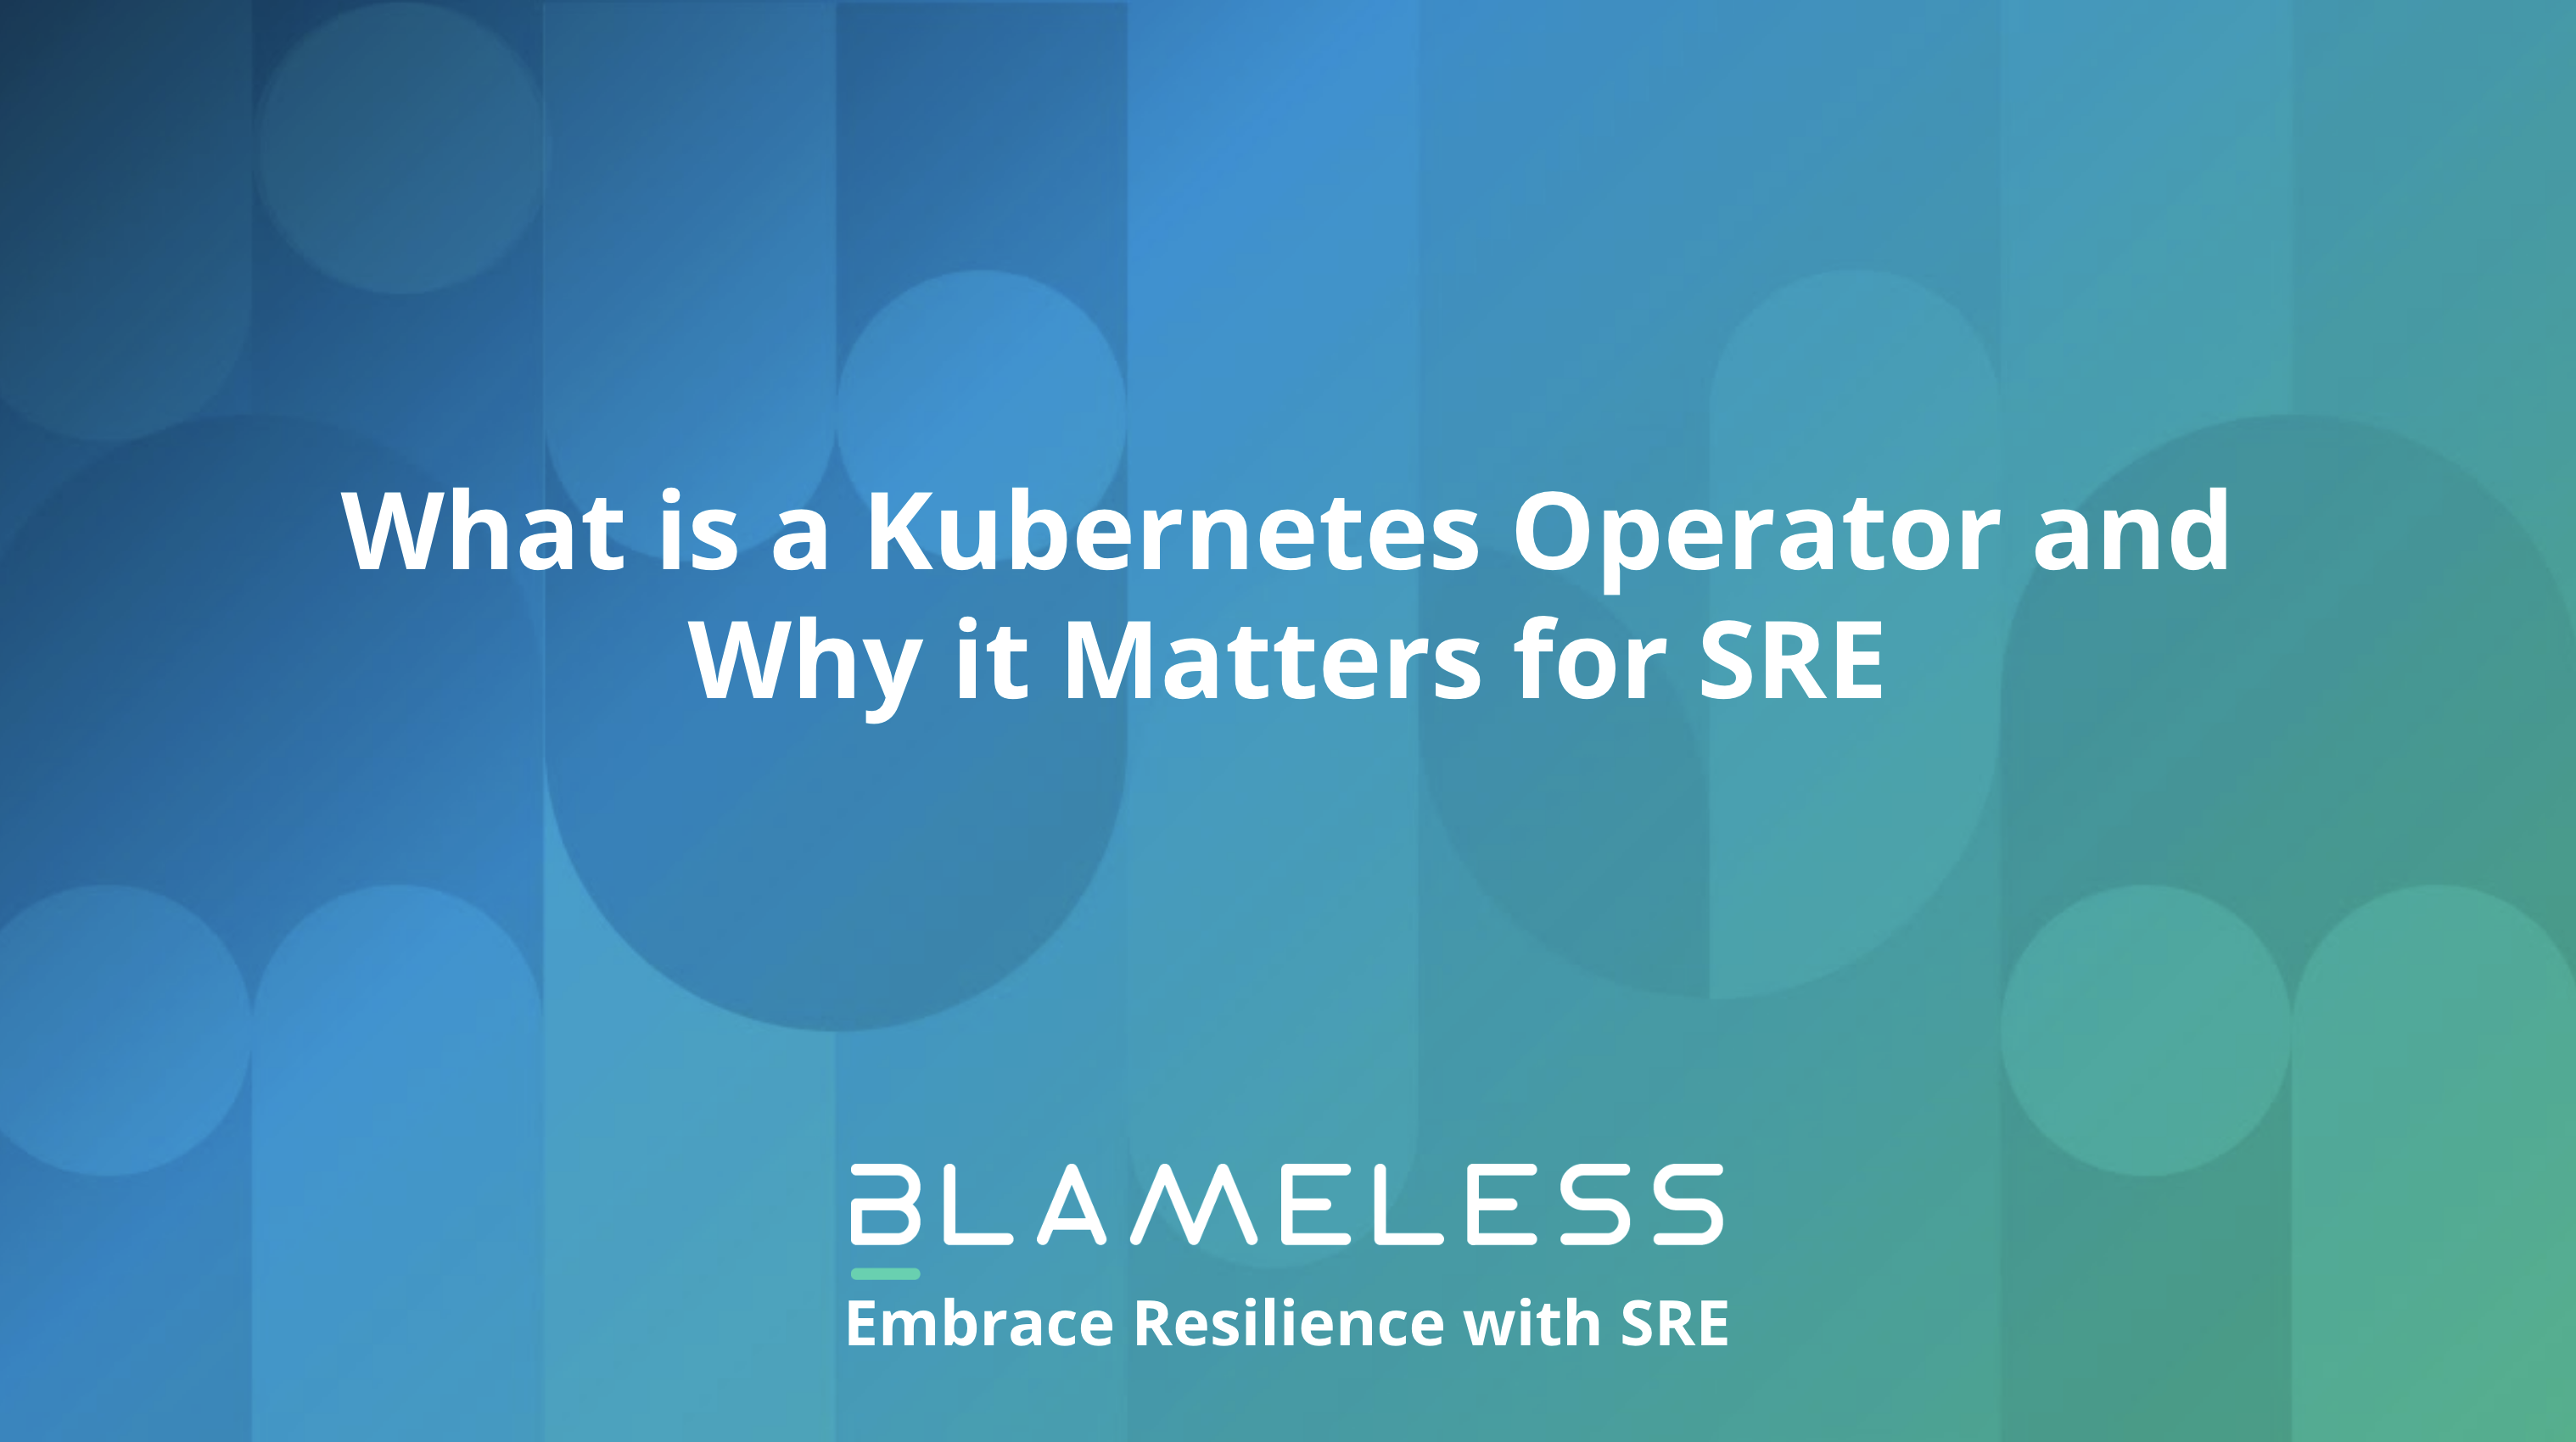 What is a Kubernetes Operator and Why it Matters for SRE